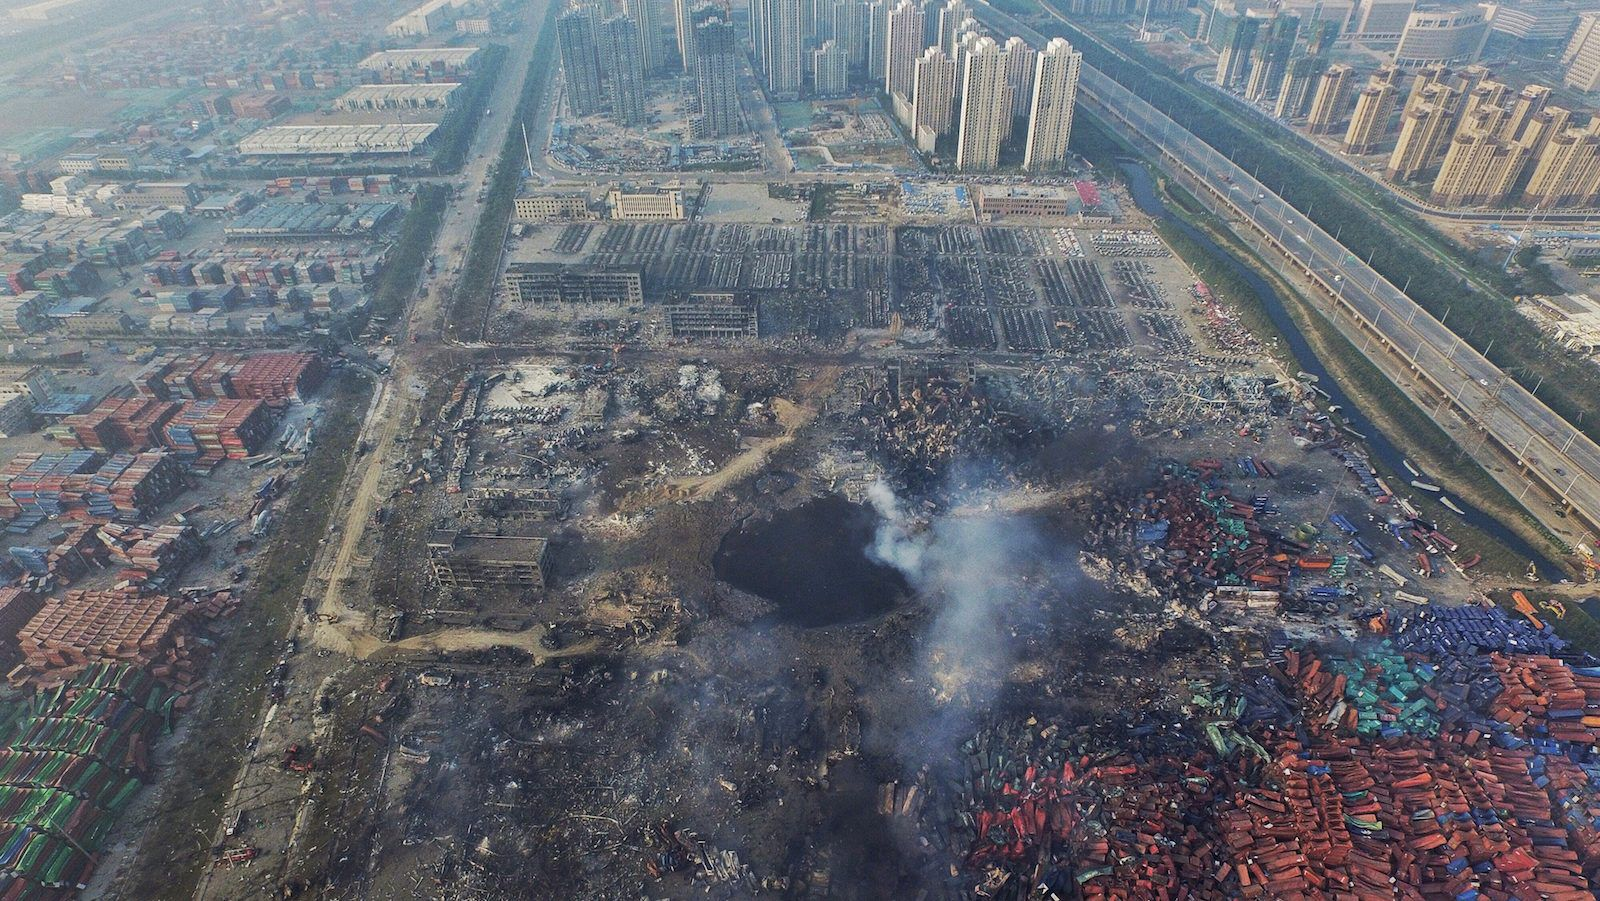 Total devastation and the fires are still burning. Aftermath of Tianjin blasts echoes the aftermath